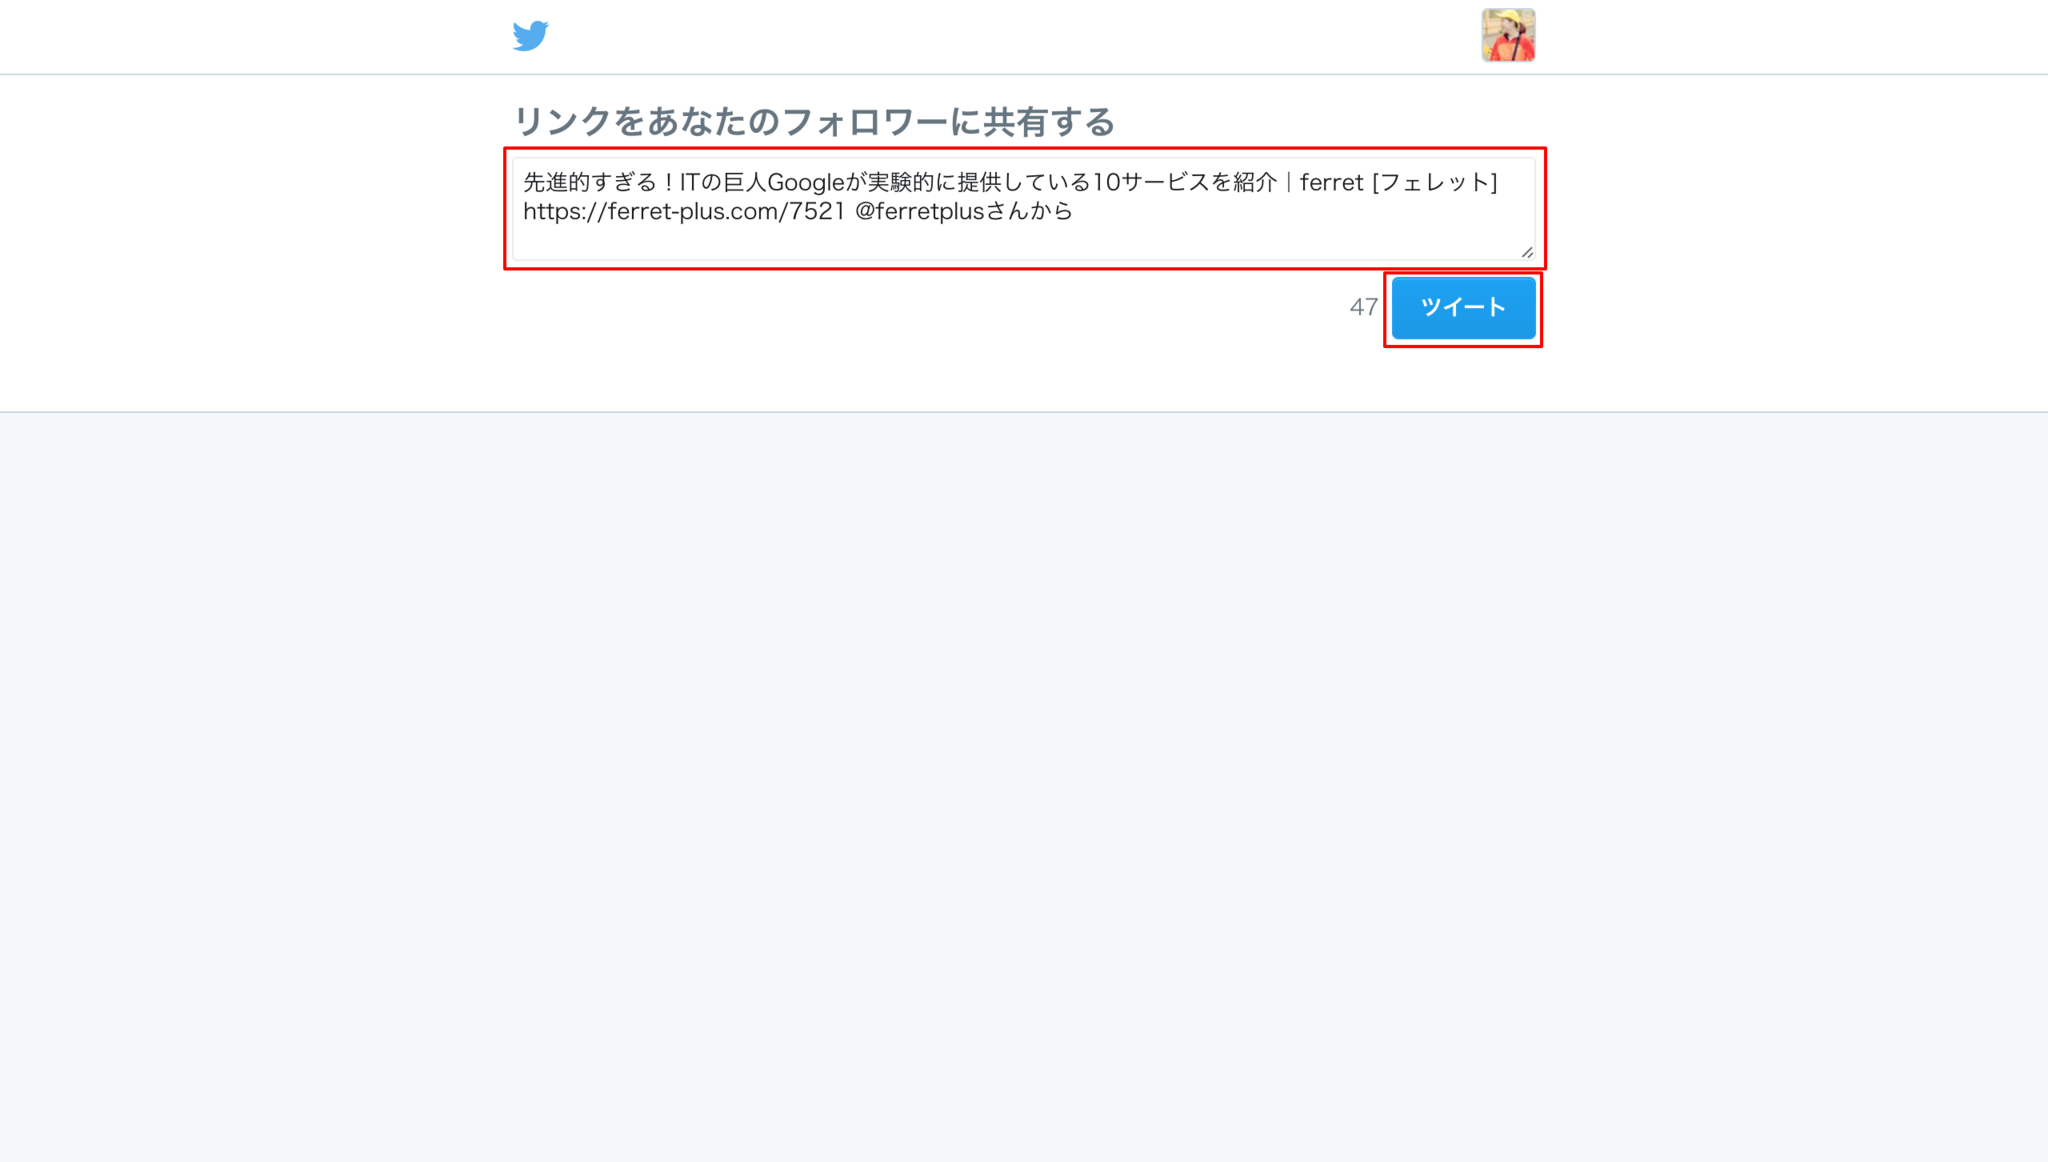 Twitter_でリンクを共有する.png